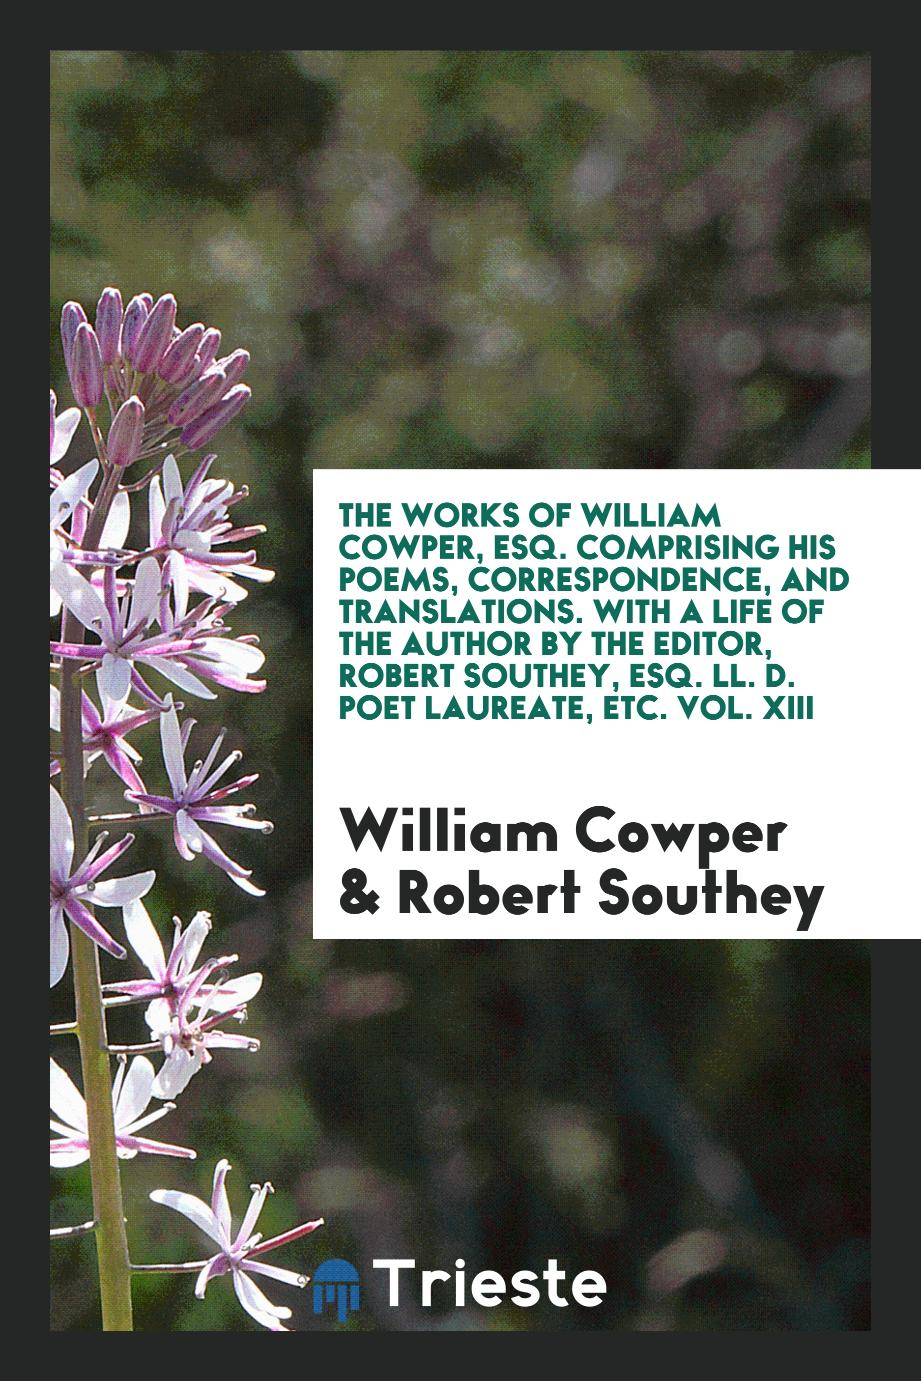 The Works of William Cowper, Esq. Comprising His Poems, Correspondence, and Translations. With a Life of the Author by the Editor, Robert Southey, Esq. LL. D. Poet Laureate, Etc. Vol. XIII